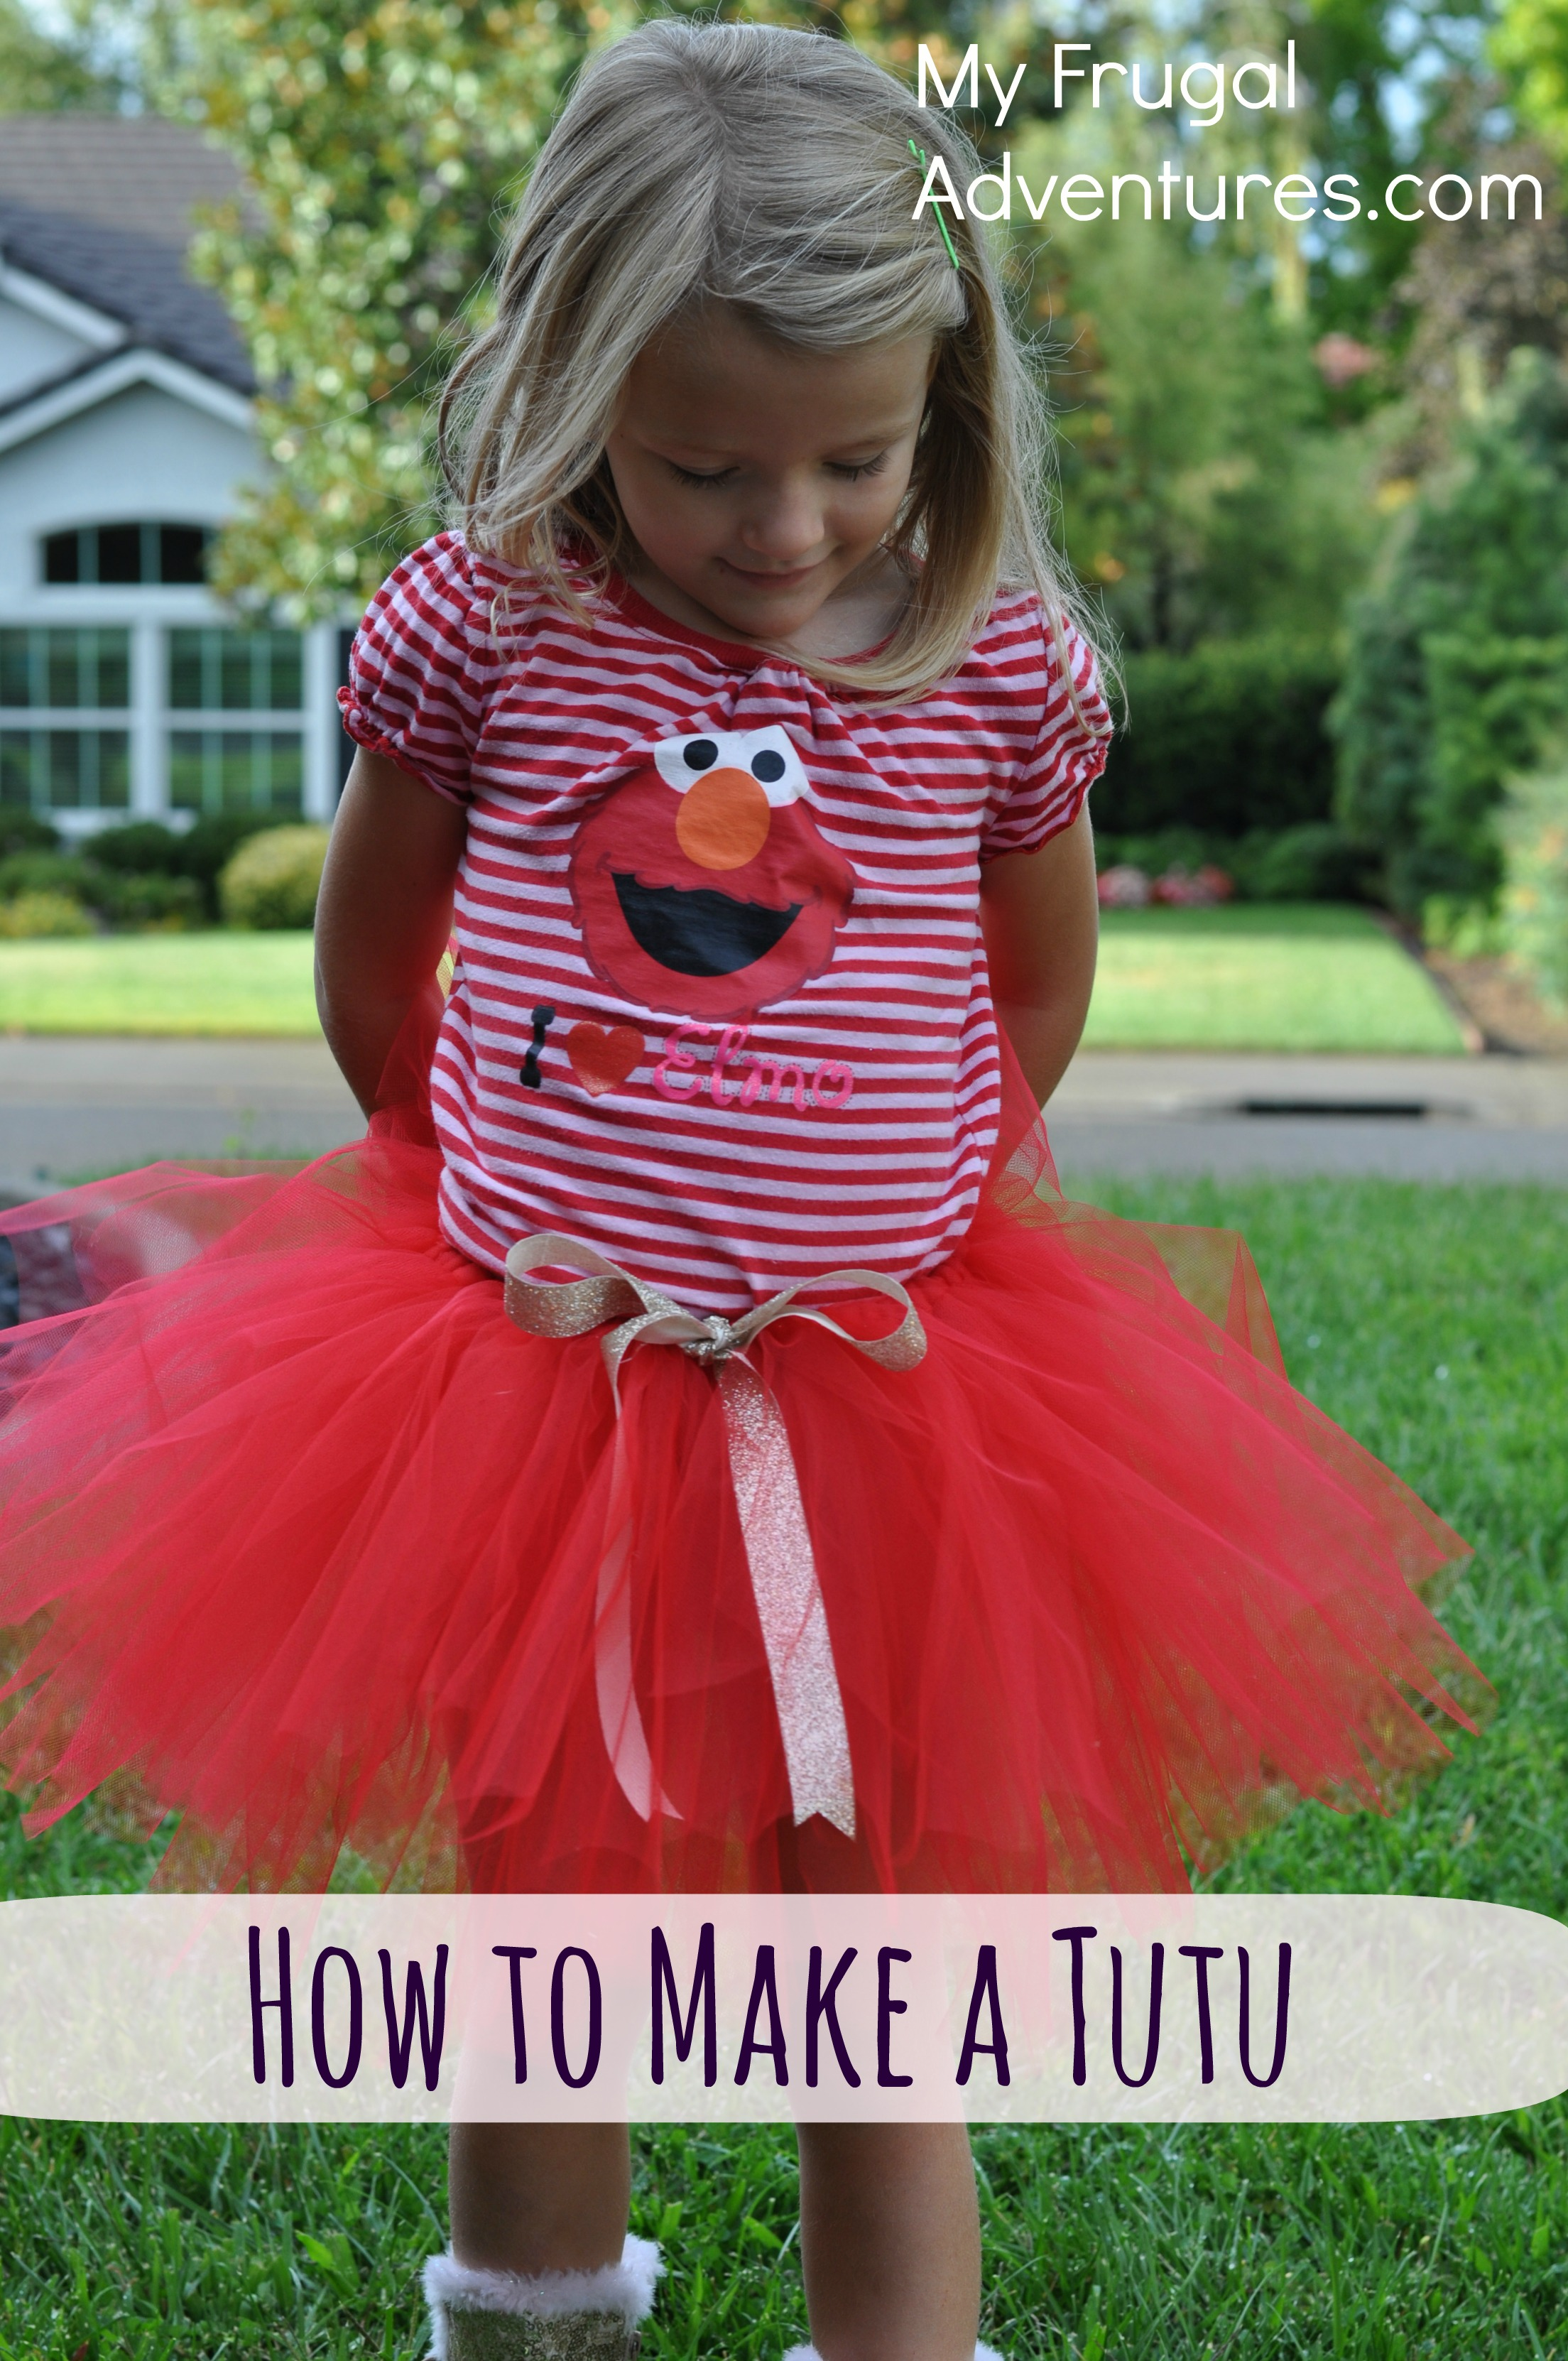 sc 1 st  My Frugal Adventures & How to Make a Tutu Quick and Easy! - My Frugal Adventures